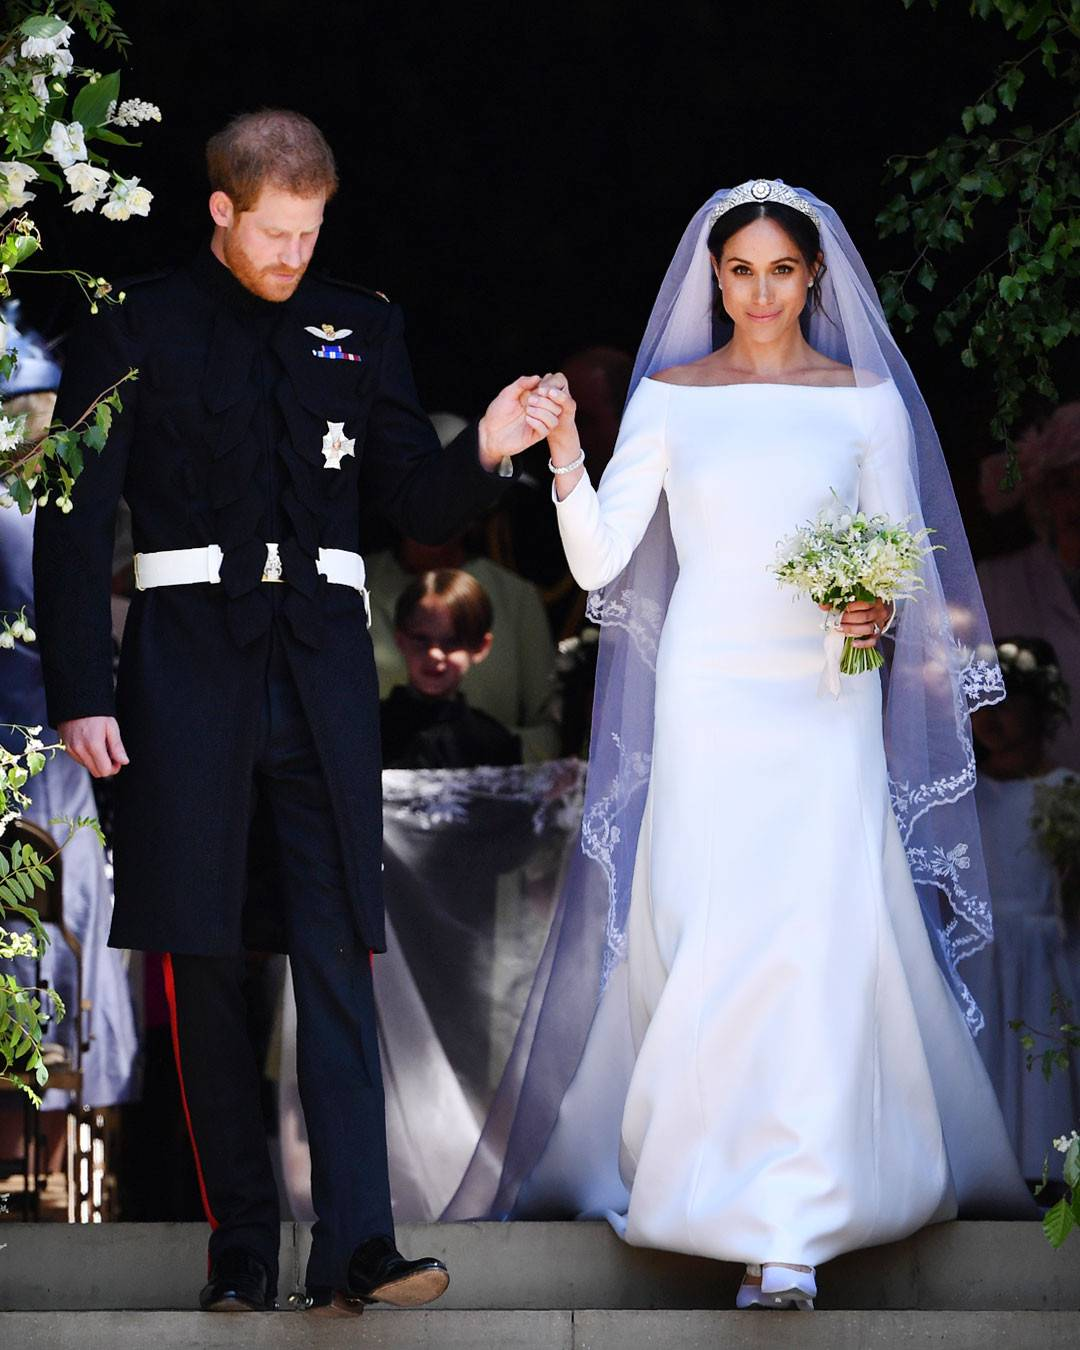 Meghan-Markle-Wedding Day in the Life: Meghan Markle